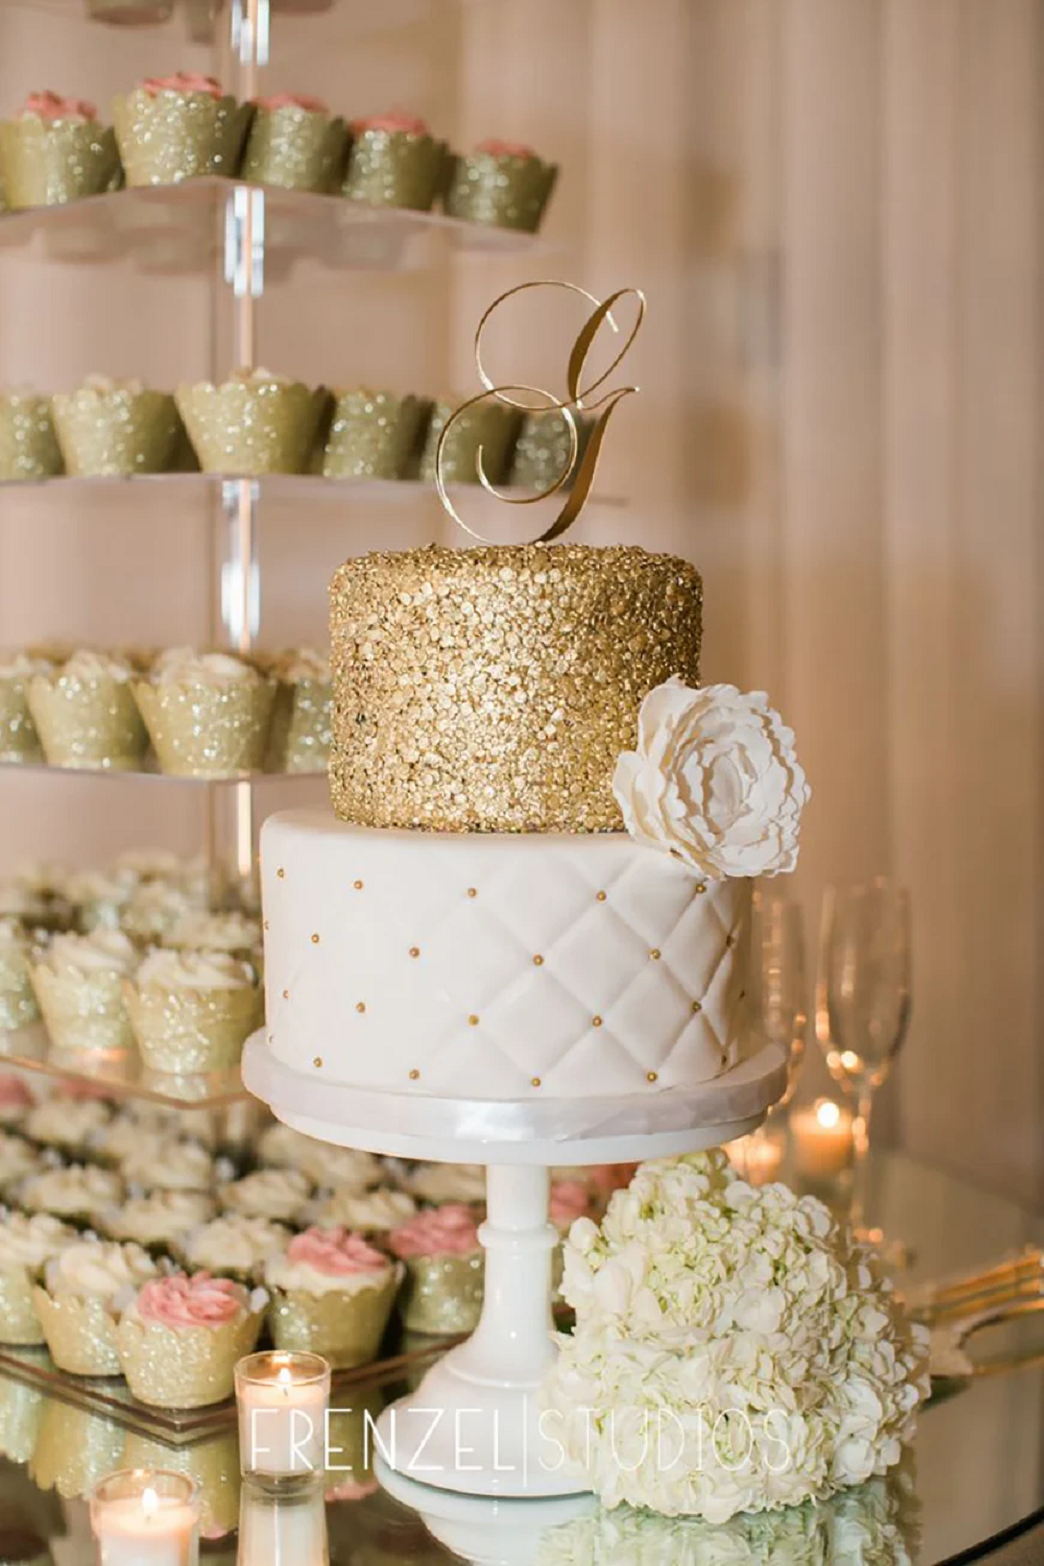 Bling wedding receptions Good Decision To Have a Gold Glittering Wedding Cake Surrounded By Pretty Cupcakes!